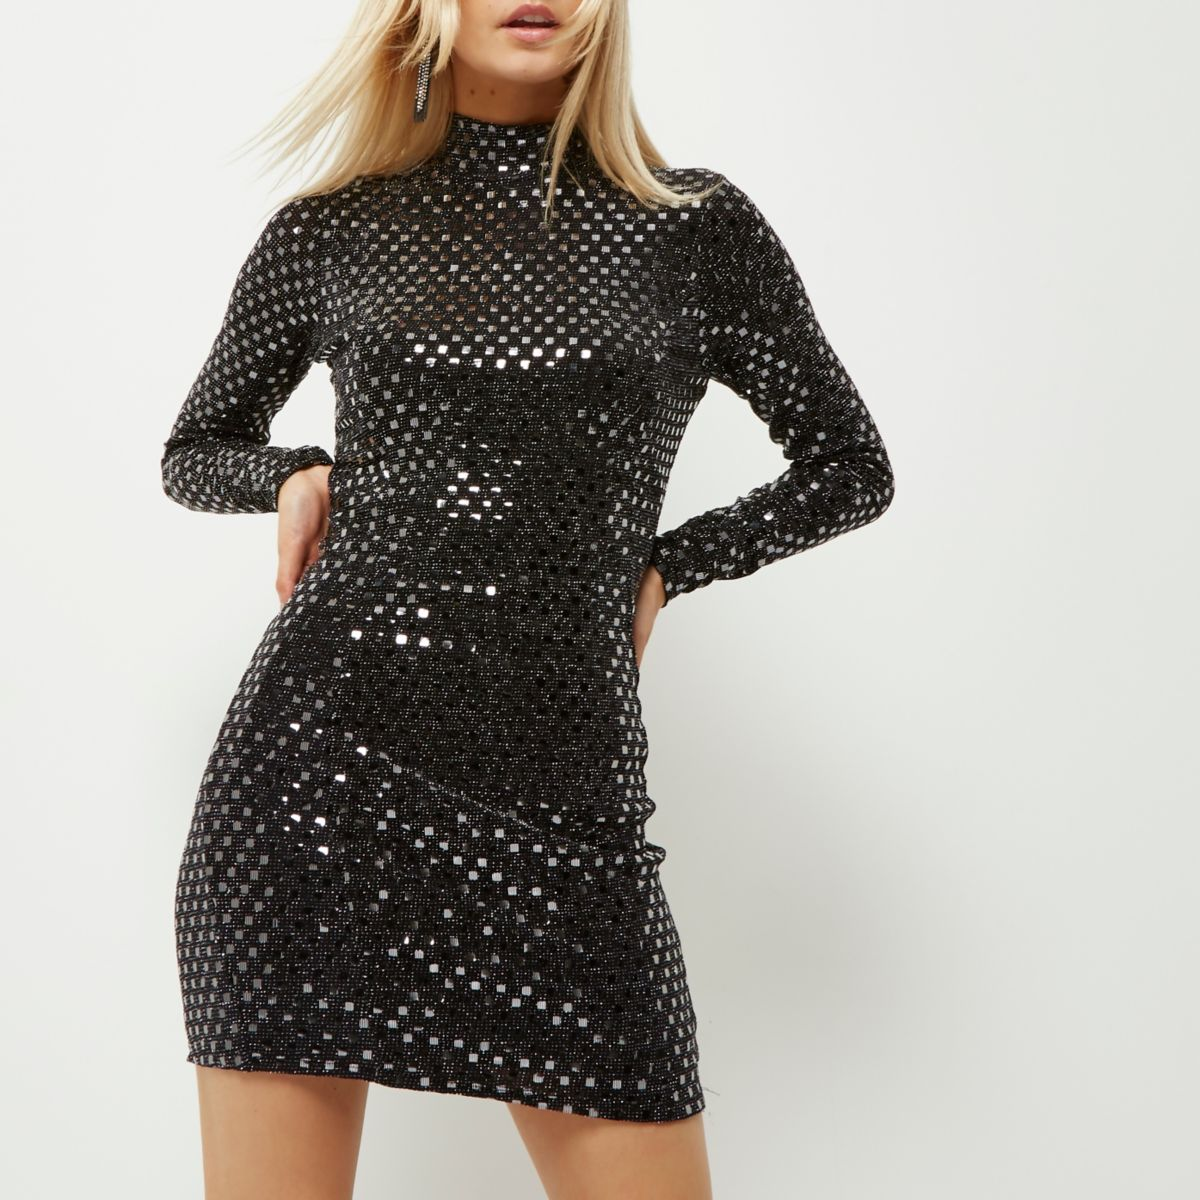 Petite black sequin cut-out bodycon dress